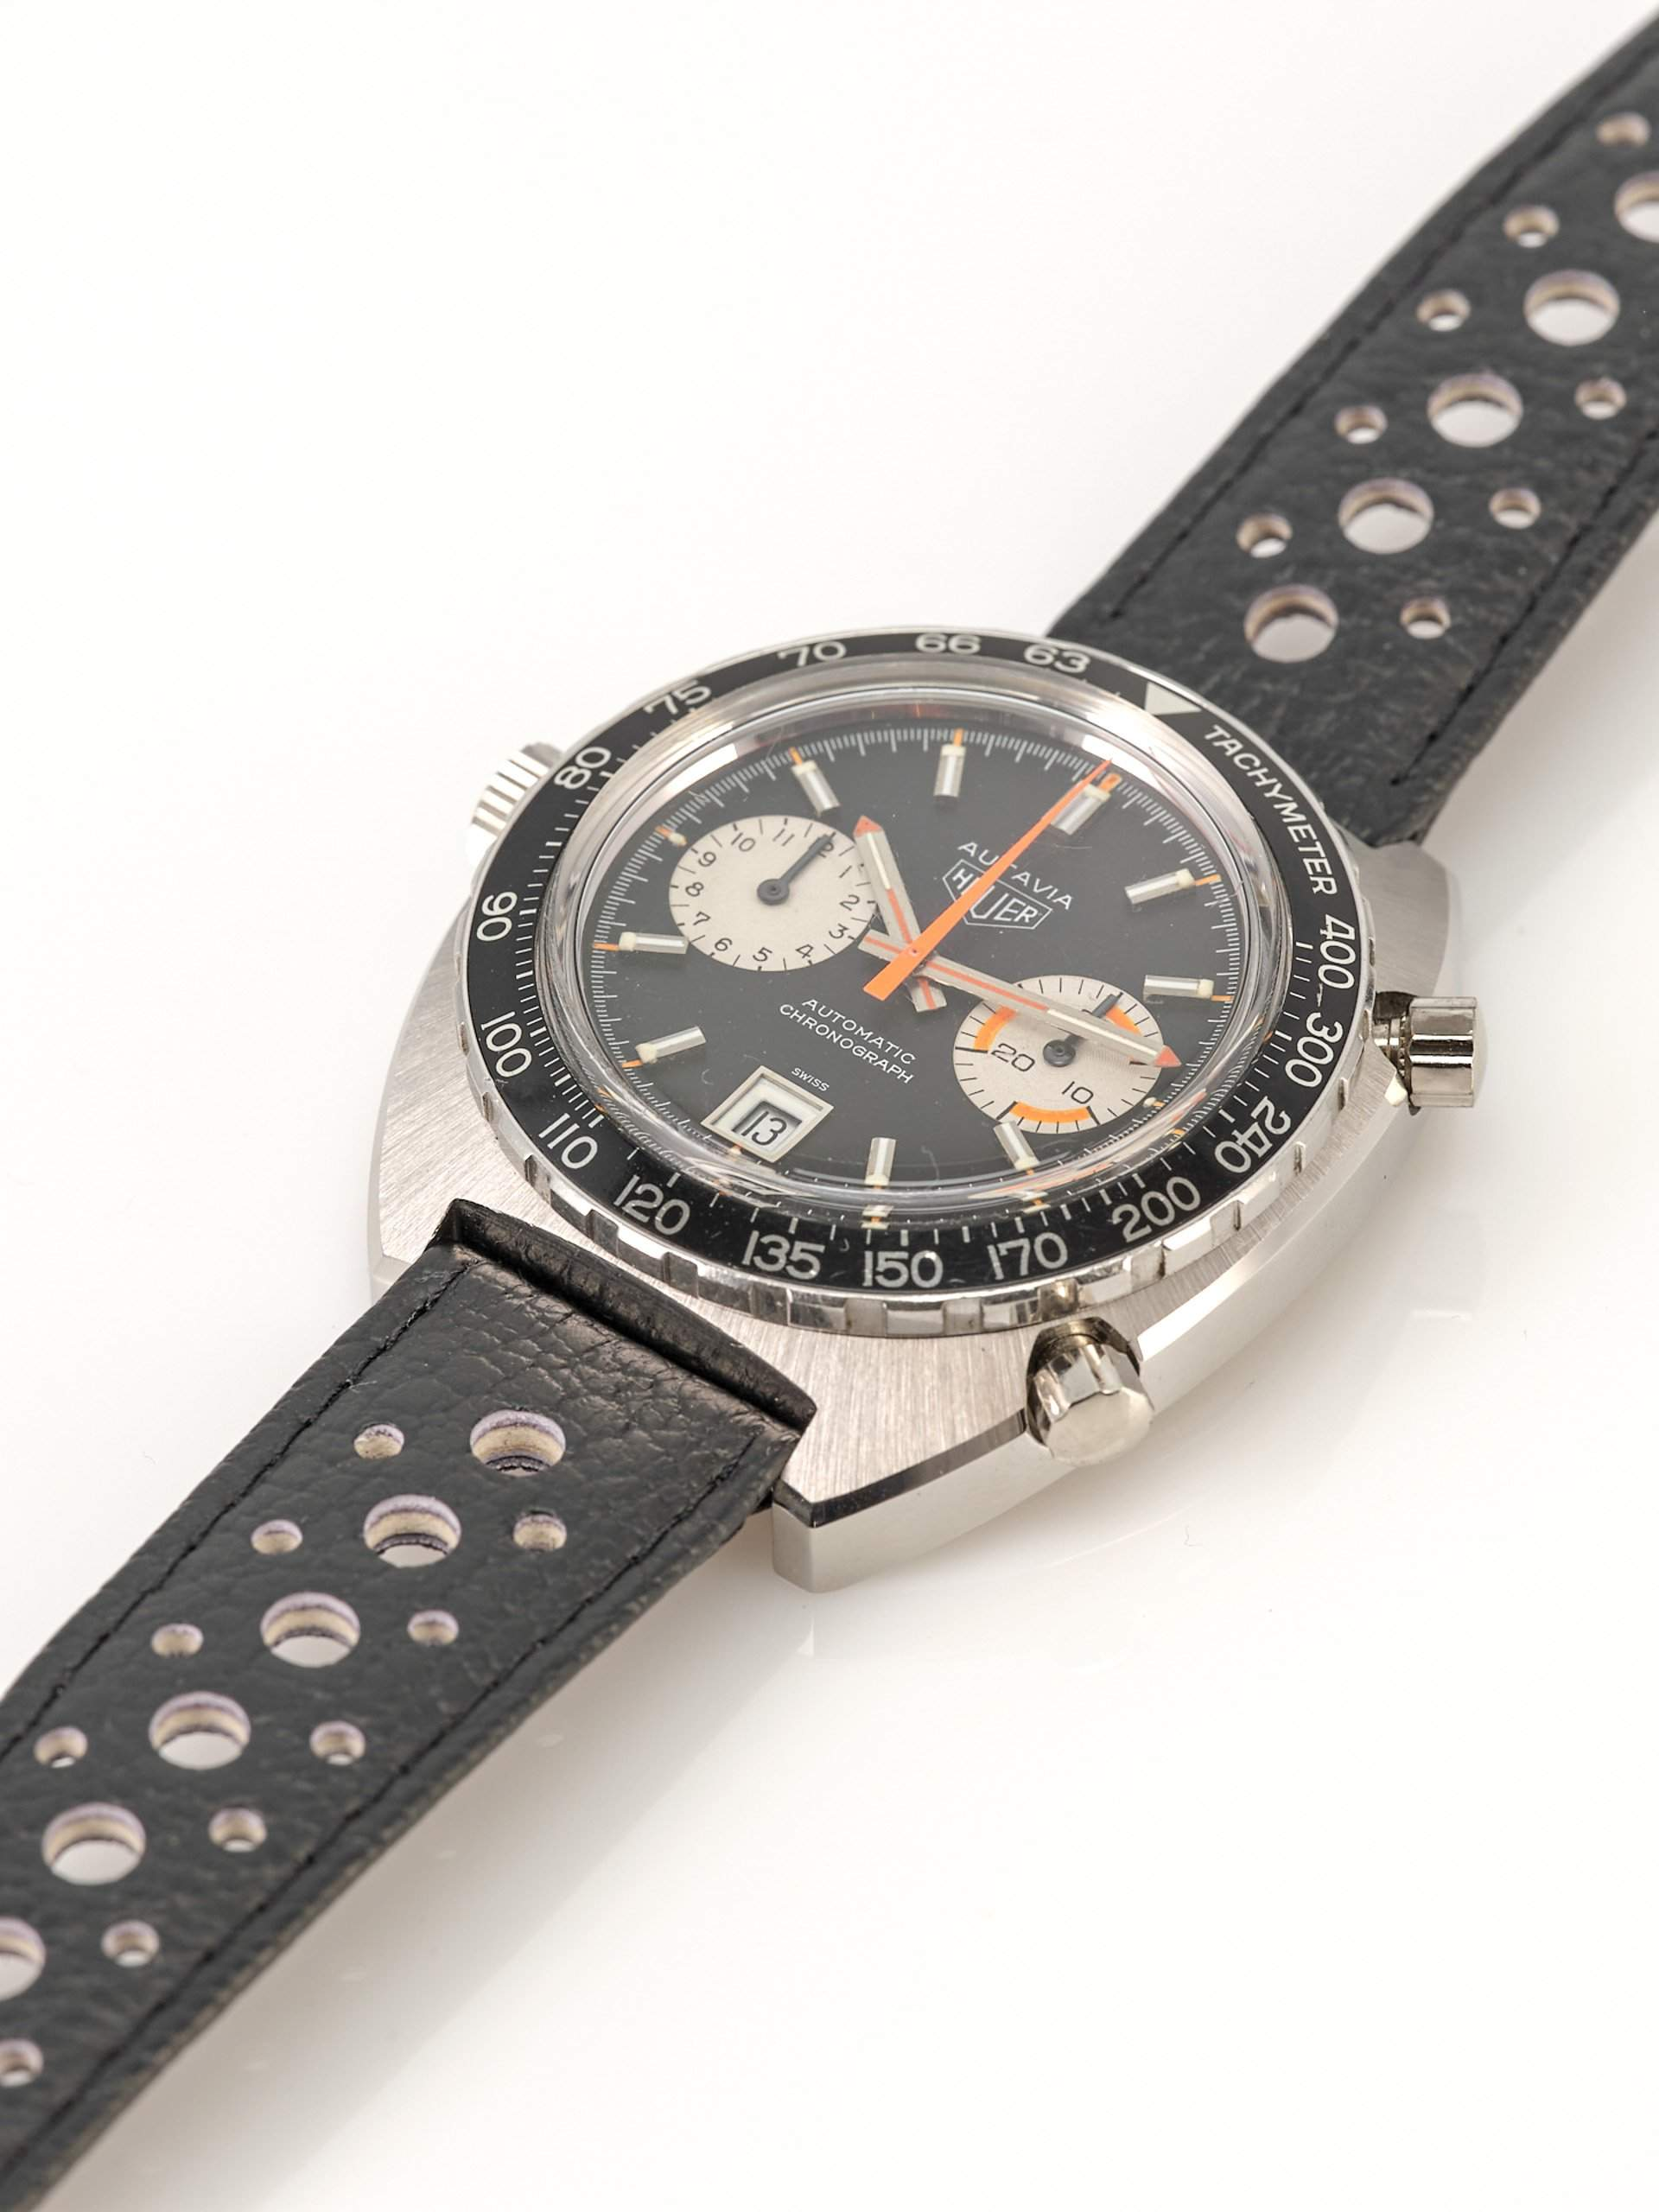 The need for (measuring) speed: a tachymeter scale